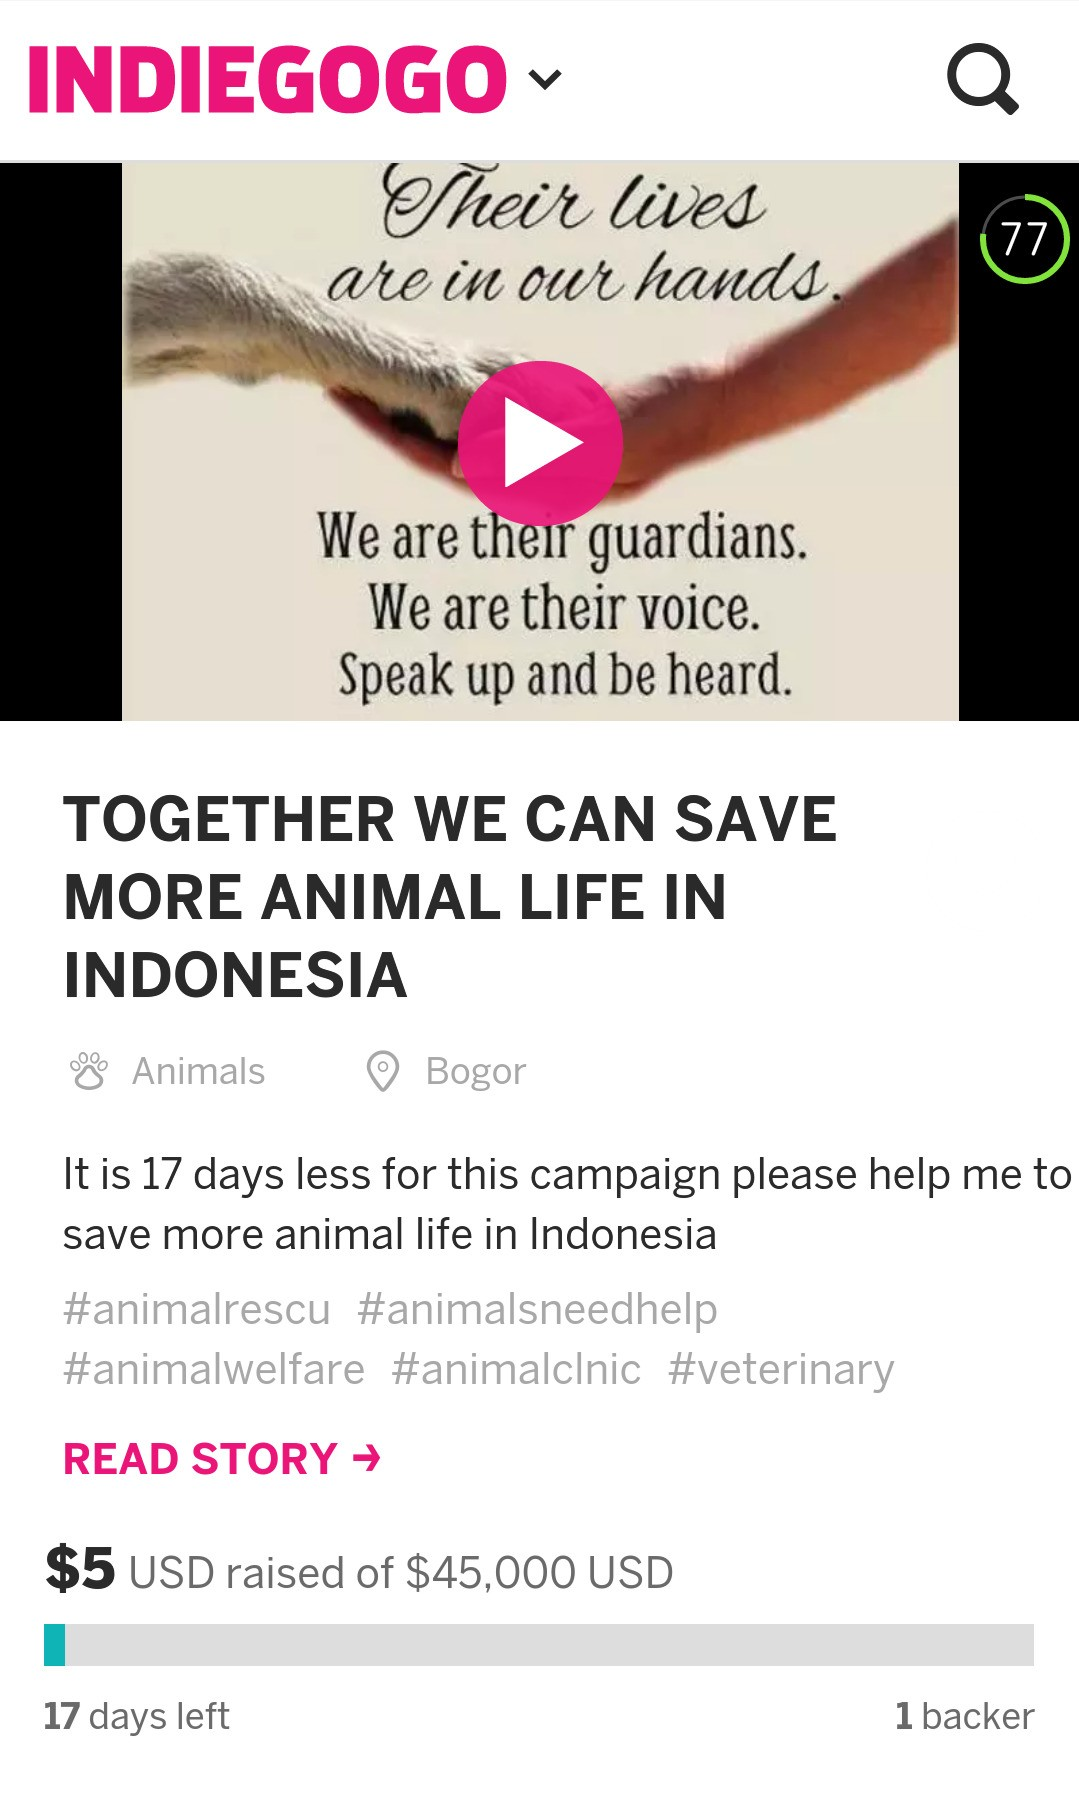 "Watch ""Together We Can Save More Animal Live"" on YouTube - reaching out to ask for your support for this projects ""TOGETHER WE SAVE MORE ANIMAL LIFE"" fundraiser on Indiegogo. There are a few ways to help : 1. Donate Everything will be helps. Even small donations have big impact for this project. 2. Post to Facebook, Instagram, Path, LinkedIn, Twitter, etc. There more people who hear about us, the more likely we are meet our goal for this project. 3.Share with your community. Call your friends, tell your co-workers, make an announcement at your organization's event to spread the word for this project I really hope your donations goes farther to help us reach our goal. Thank you Dwi wisnugrahani Check out ""TOGETHER WE CAN SAVE MORE ANIMAL LIFE IN INDONESIA"" on Indiegogo"